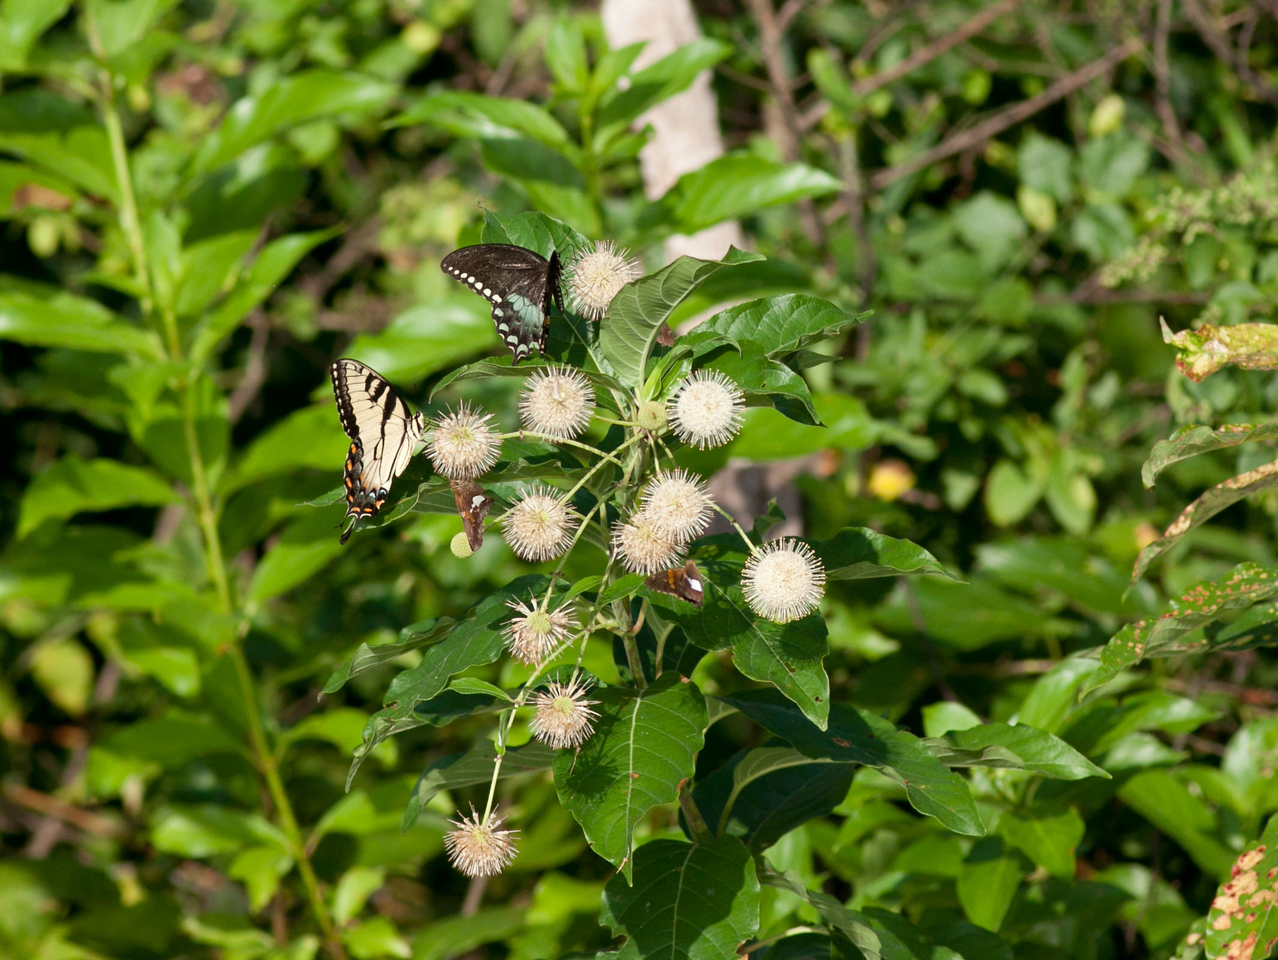 Eastern Tiger Swallowtail light form<br /> Eastern Tiger Swallowtail dark form<br /> Silver Spot Skippers